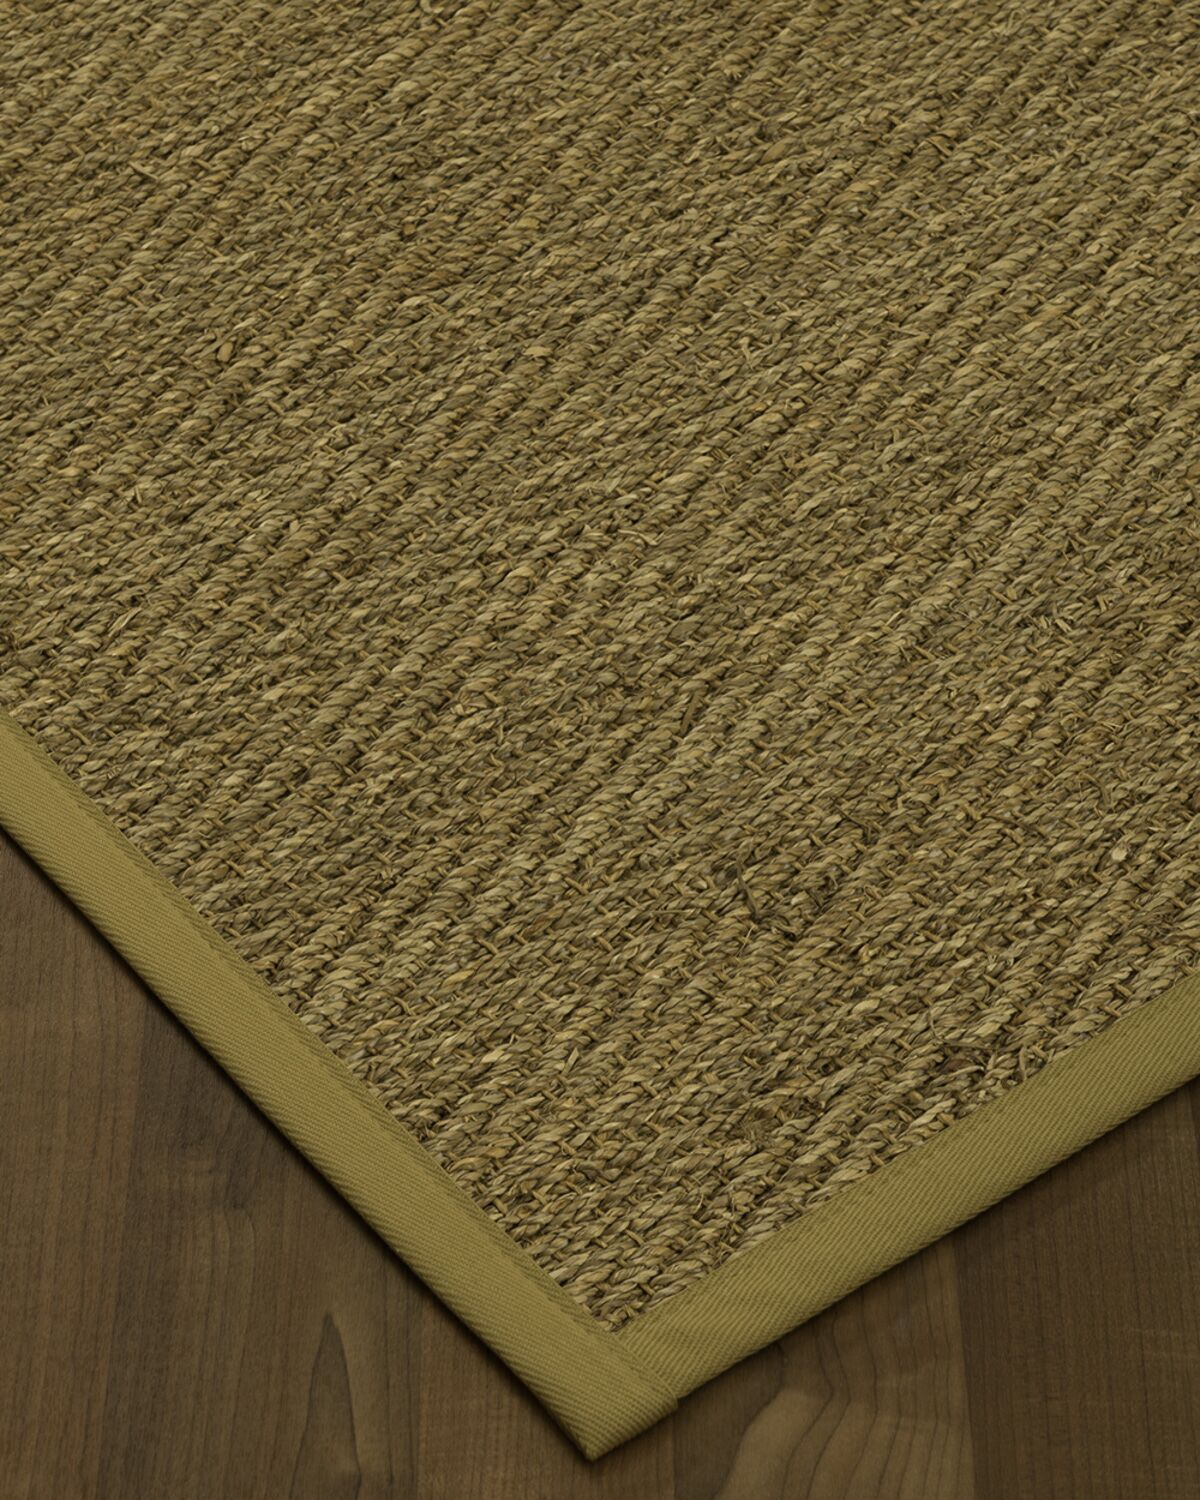 Chavarria Border Hand-Woven Beige/Sage Area Rug Rug Pad Included: No, Rug Size: Rectangle 3' x 5'